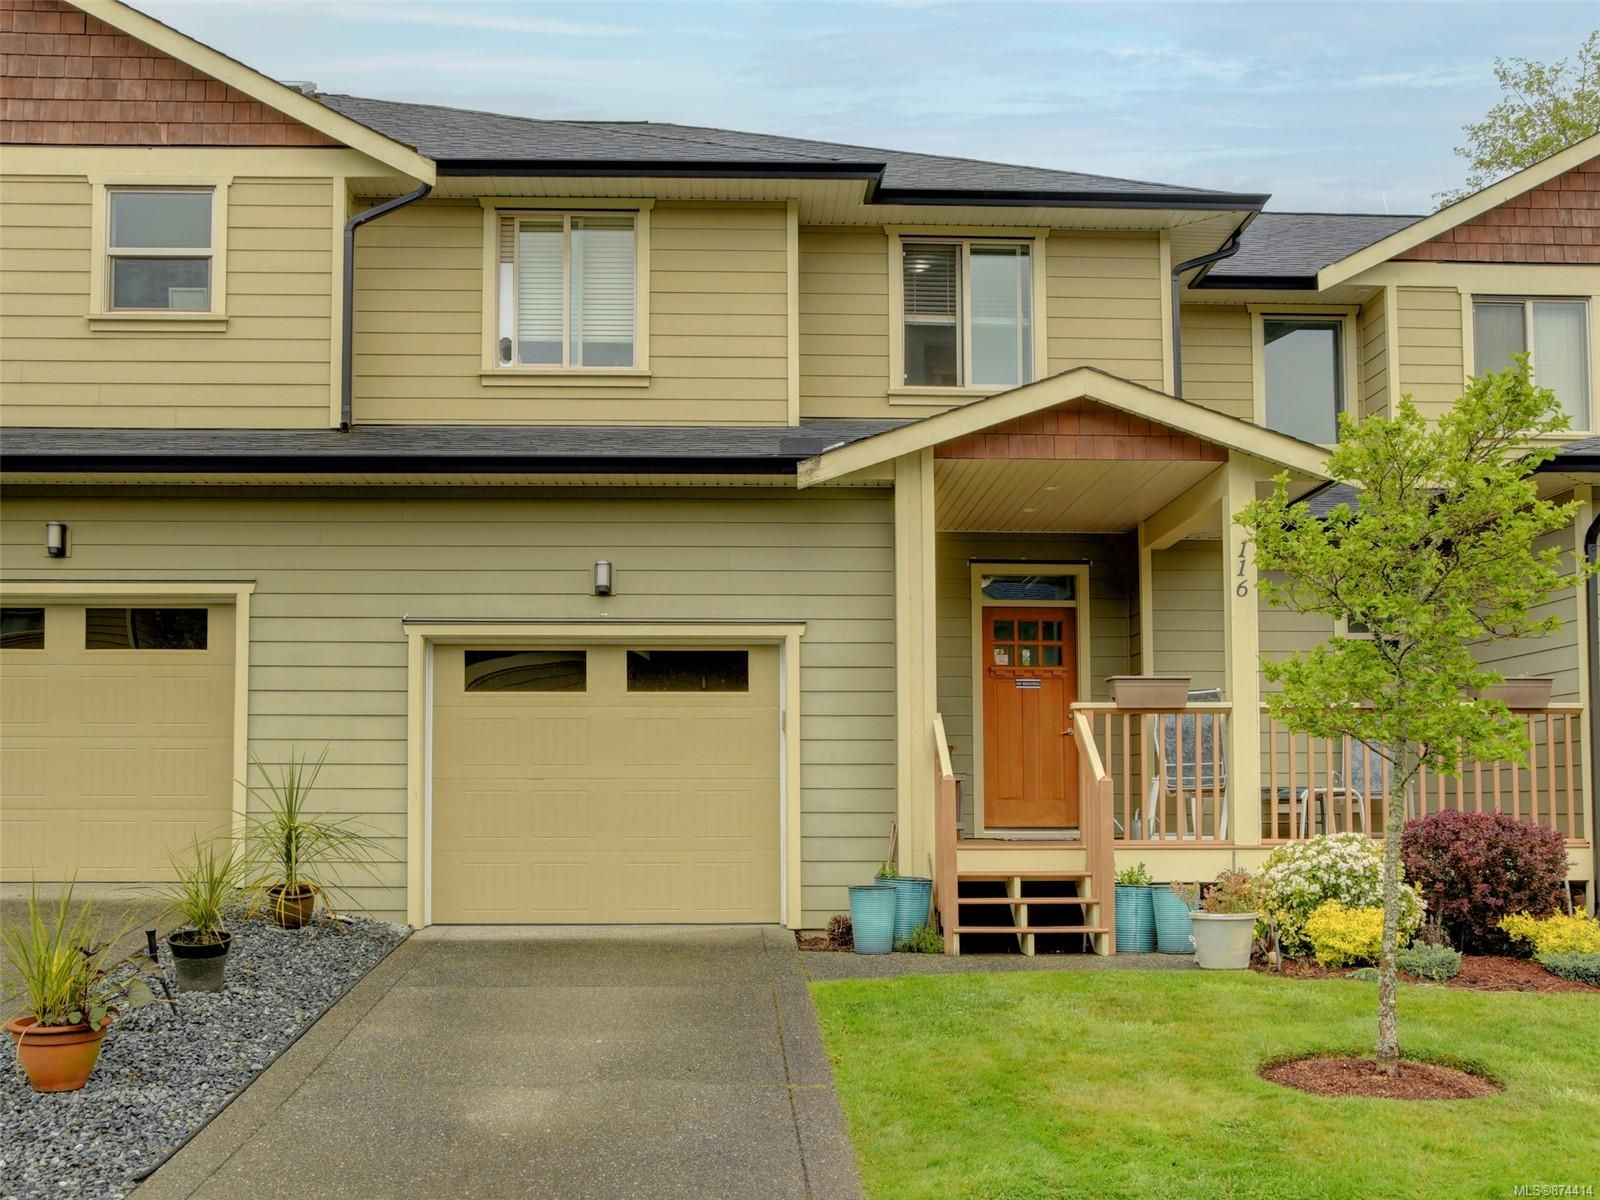 Main Photo: 116 2253 Townsend Rd in : Sk Broomhill Row/Townhouse for sale (Sooke)  : MLS®# 874414